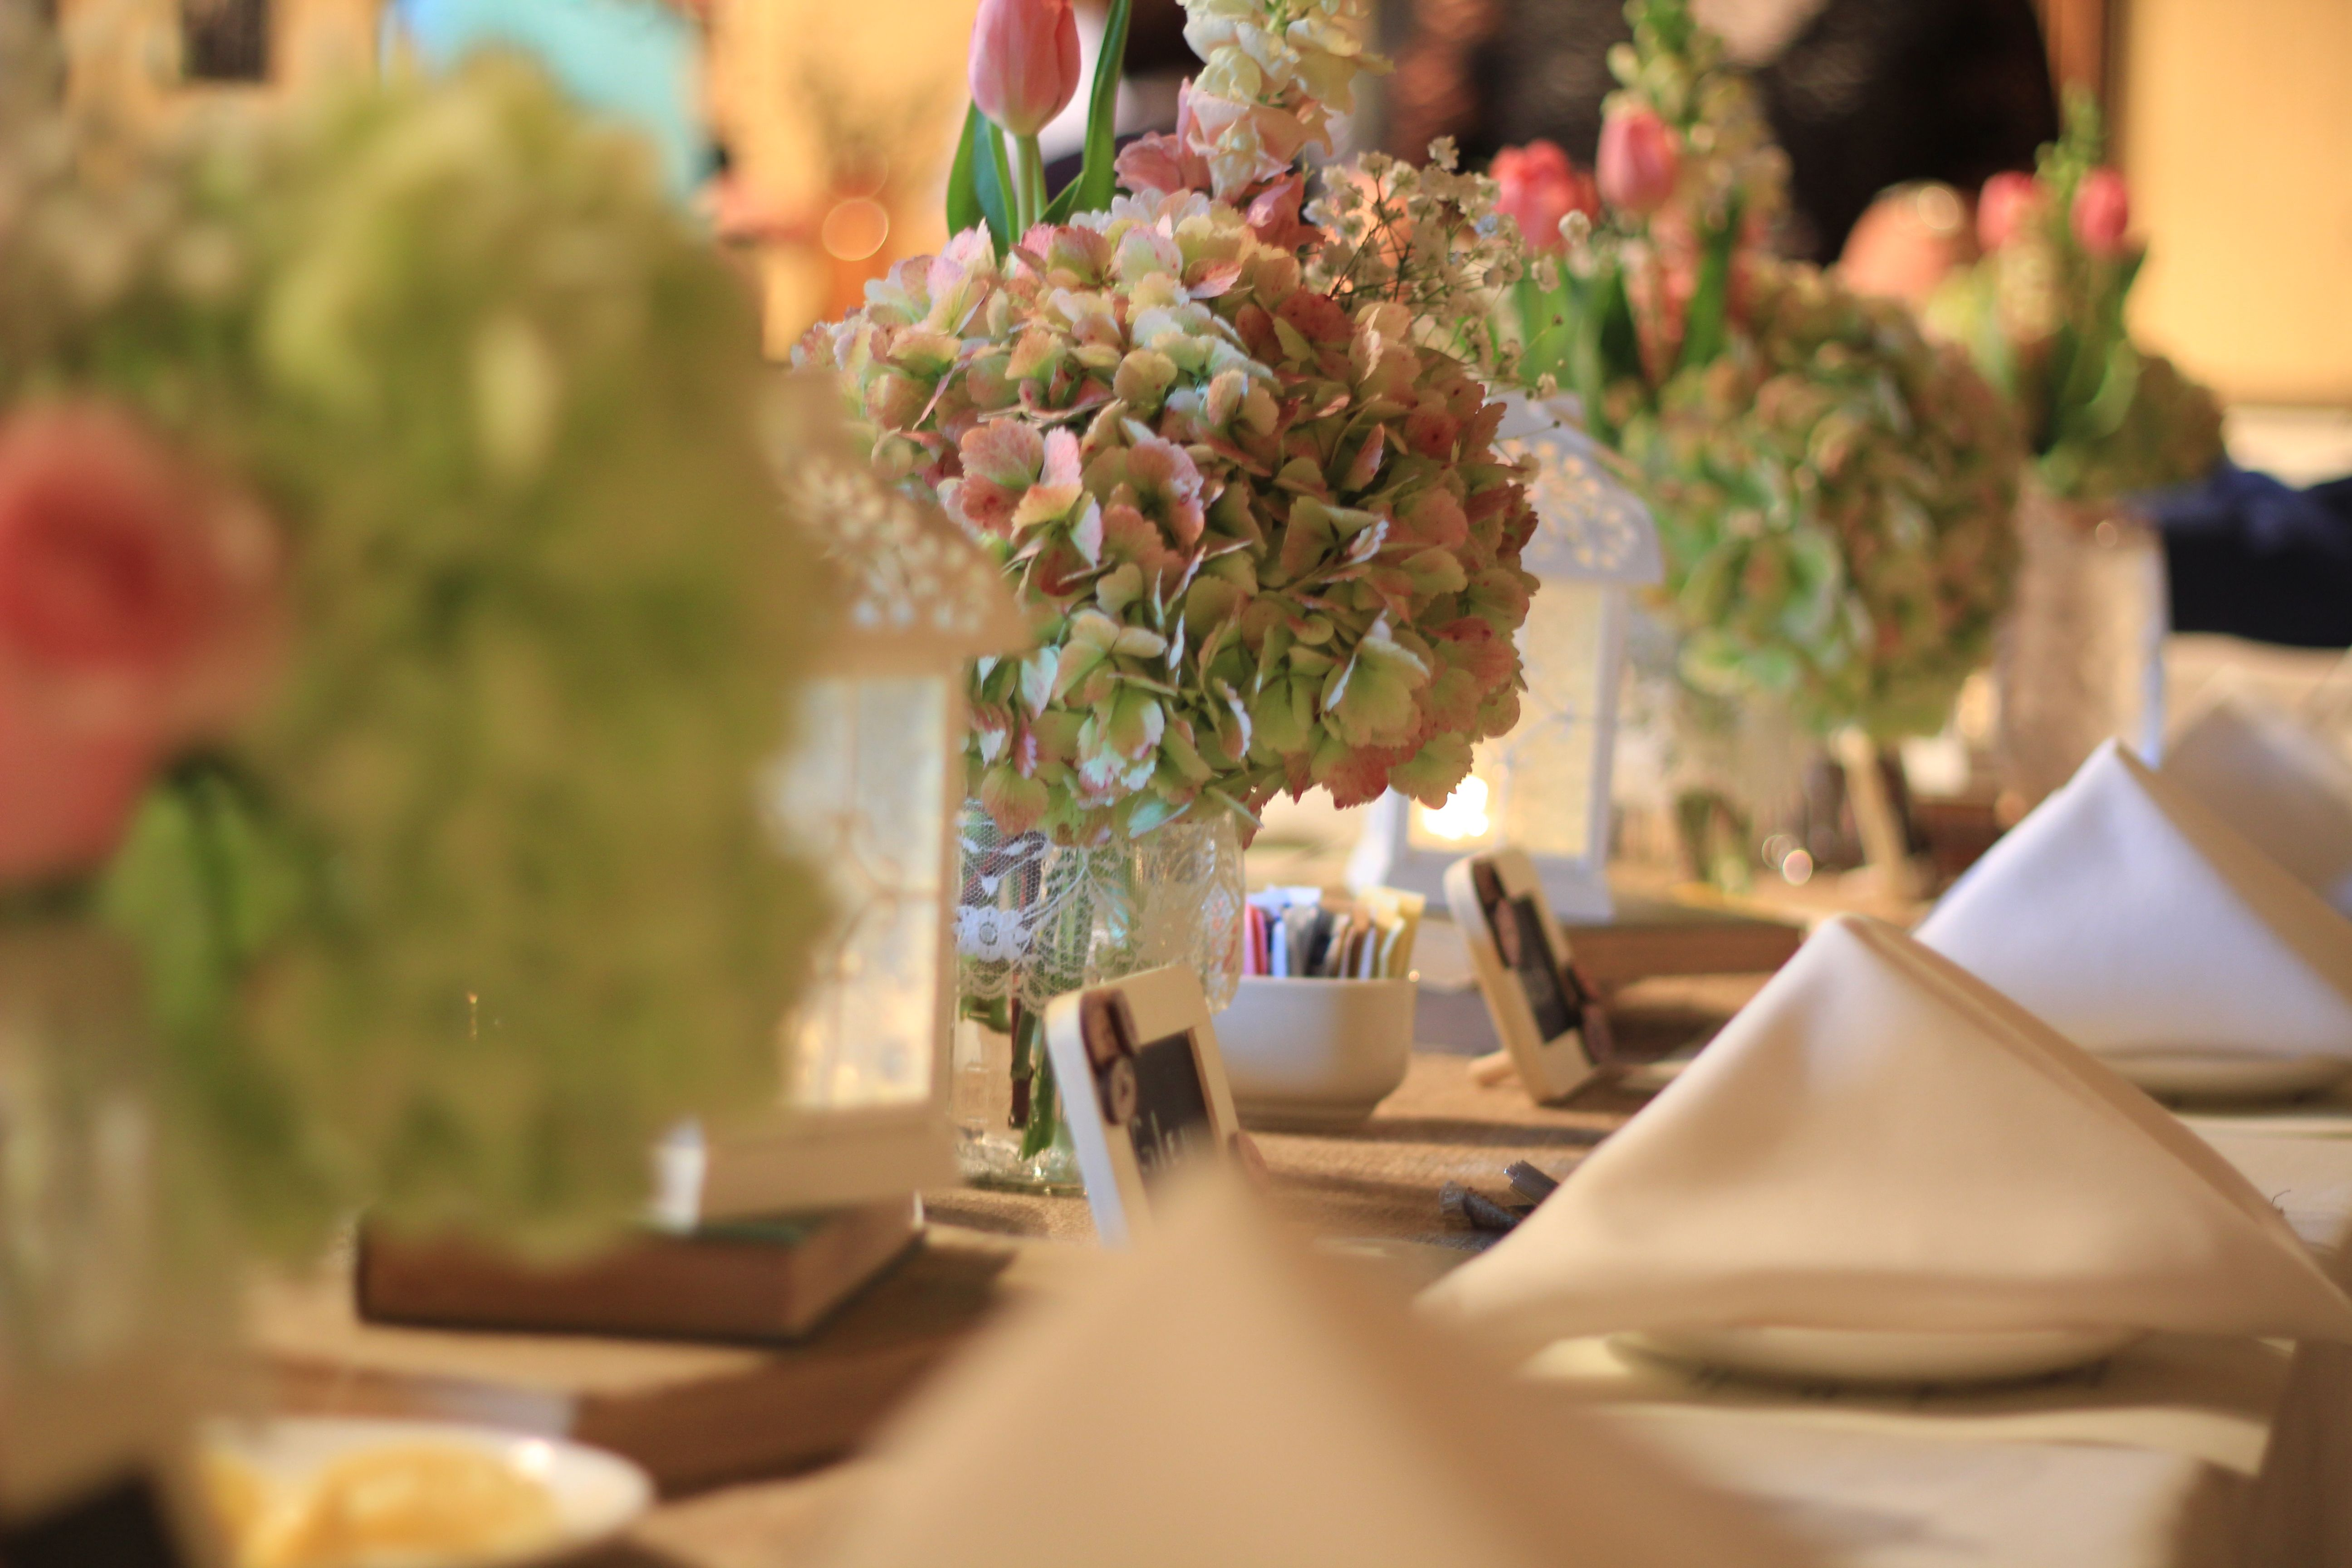 Wedding Rehearsal Dinner Decorations She Loved Vintage And Burlap